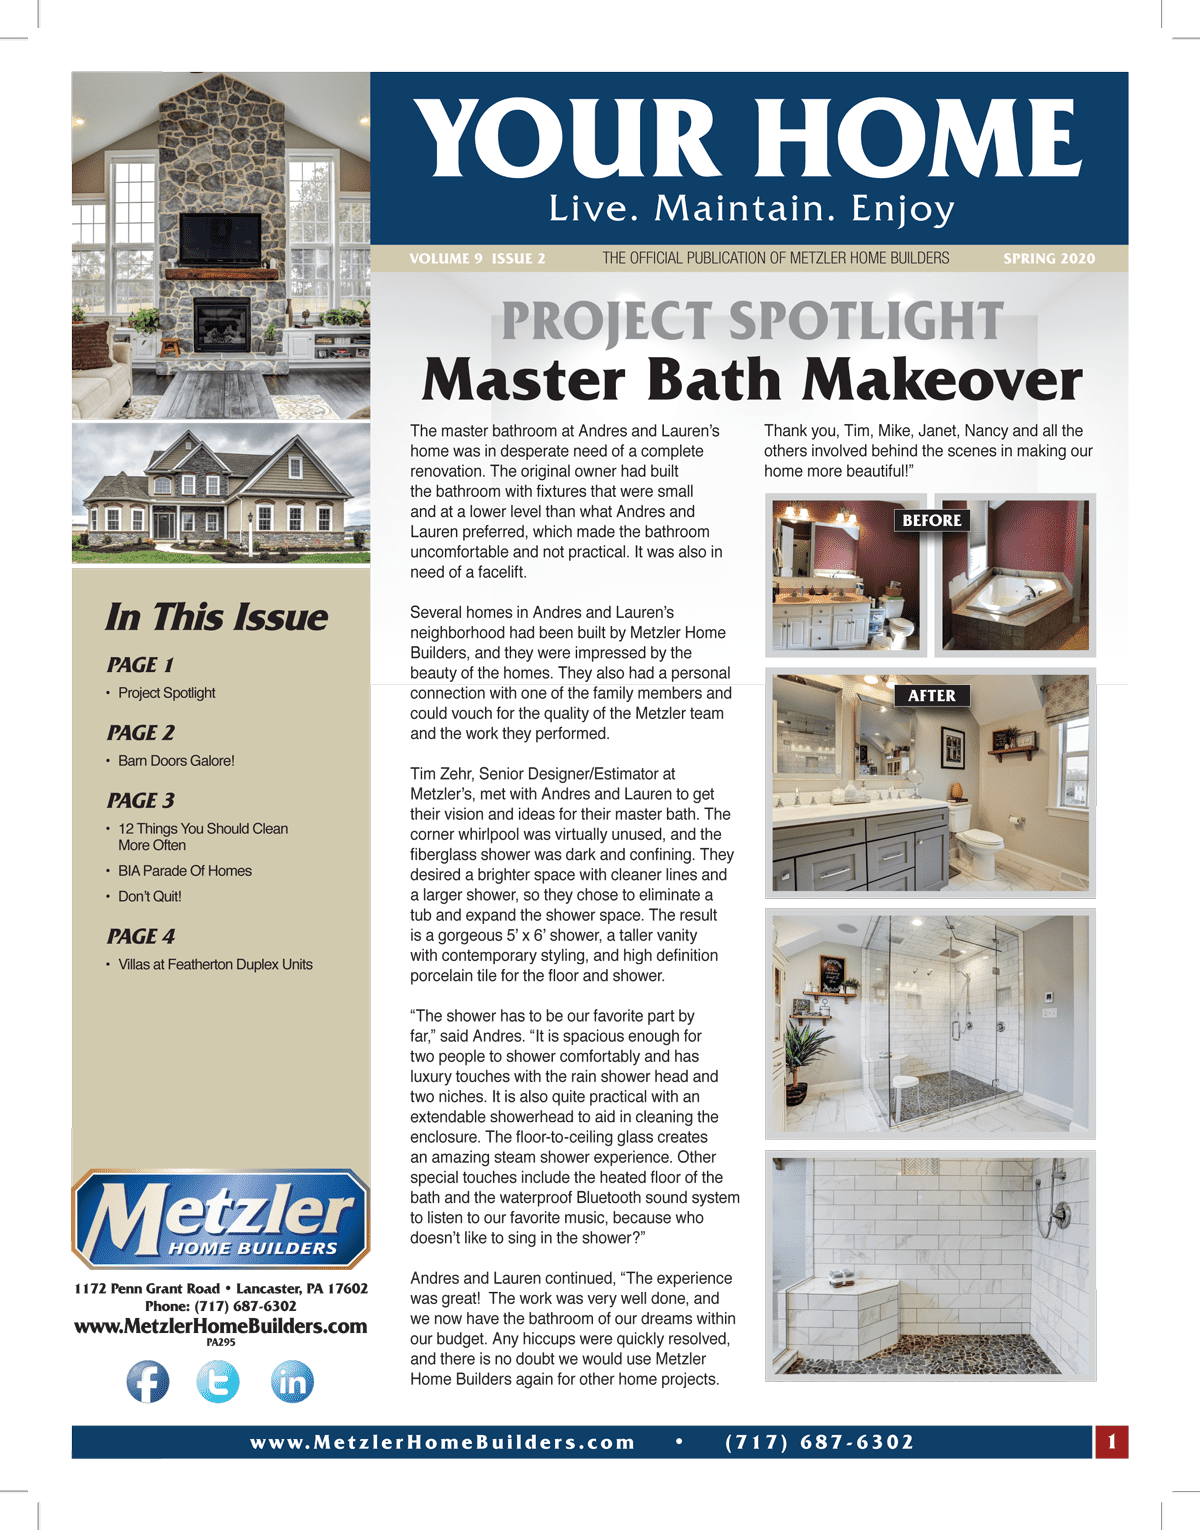 Metzler 'Your Home' Newsletter PDF cover for Volume 9 Issue 2